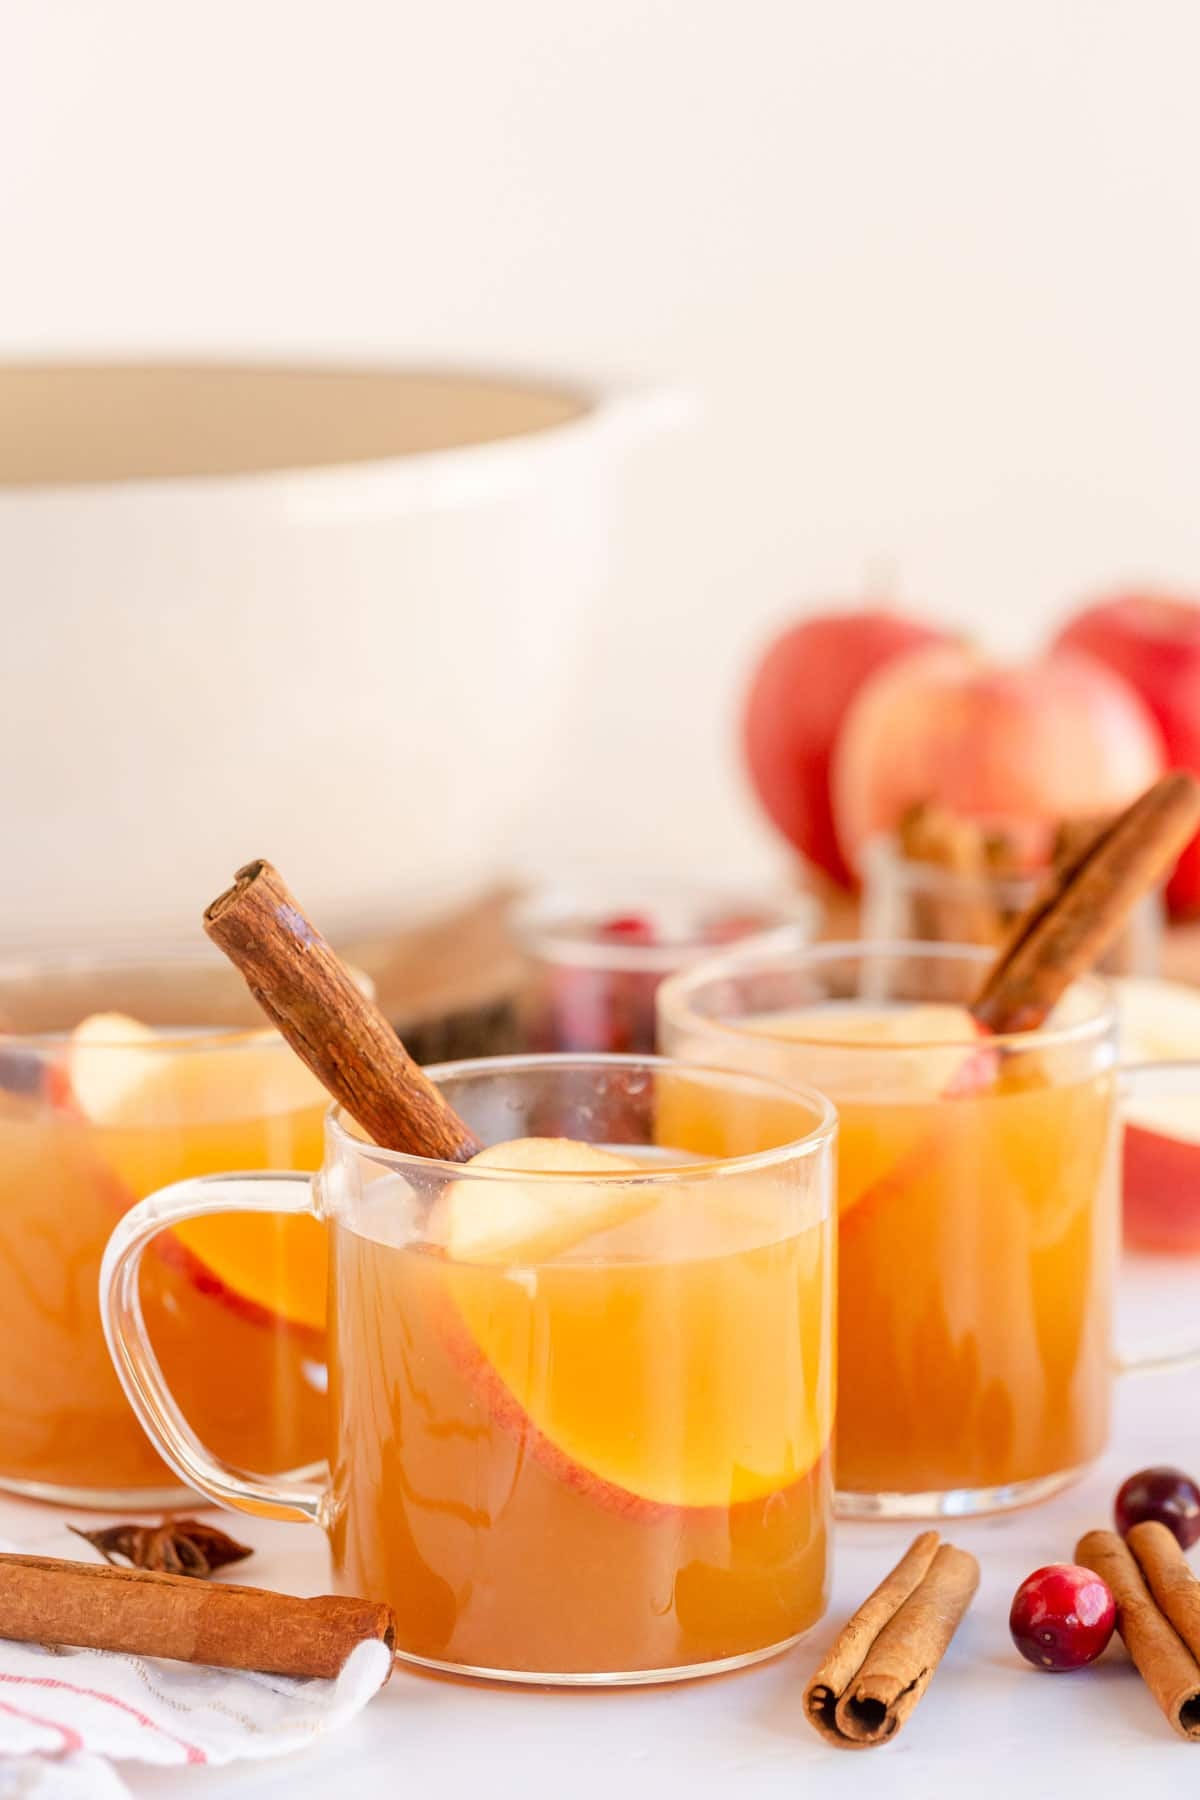 Glass mugs with spiced apple cider